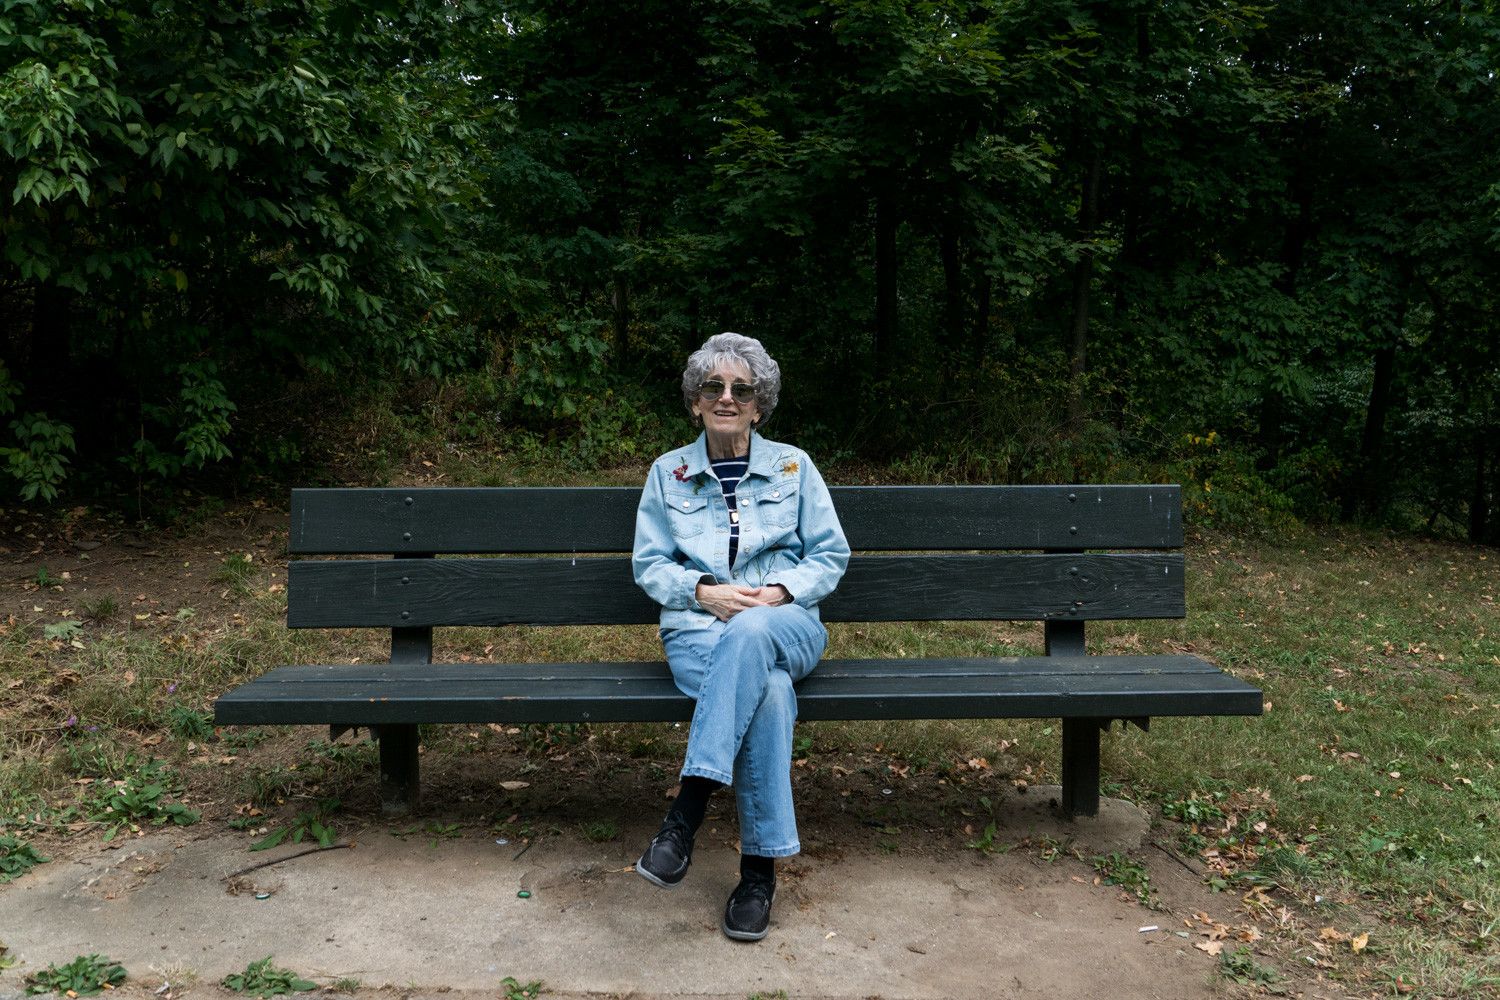 Hackett Park, located at West 254th Street and Riverdale Avenue, doesn't have a bench problem, but it does have a beauty problem. If Emilie Kaufman could have her way, the park would have tables and chairs and better landscaping to make the area more inviting.